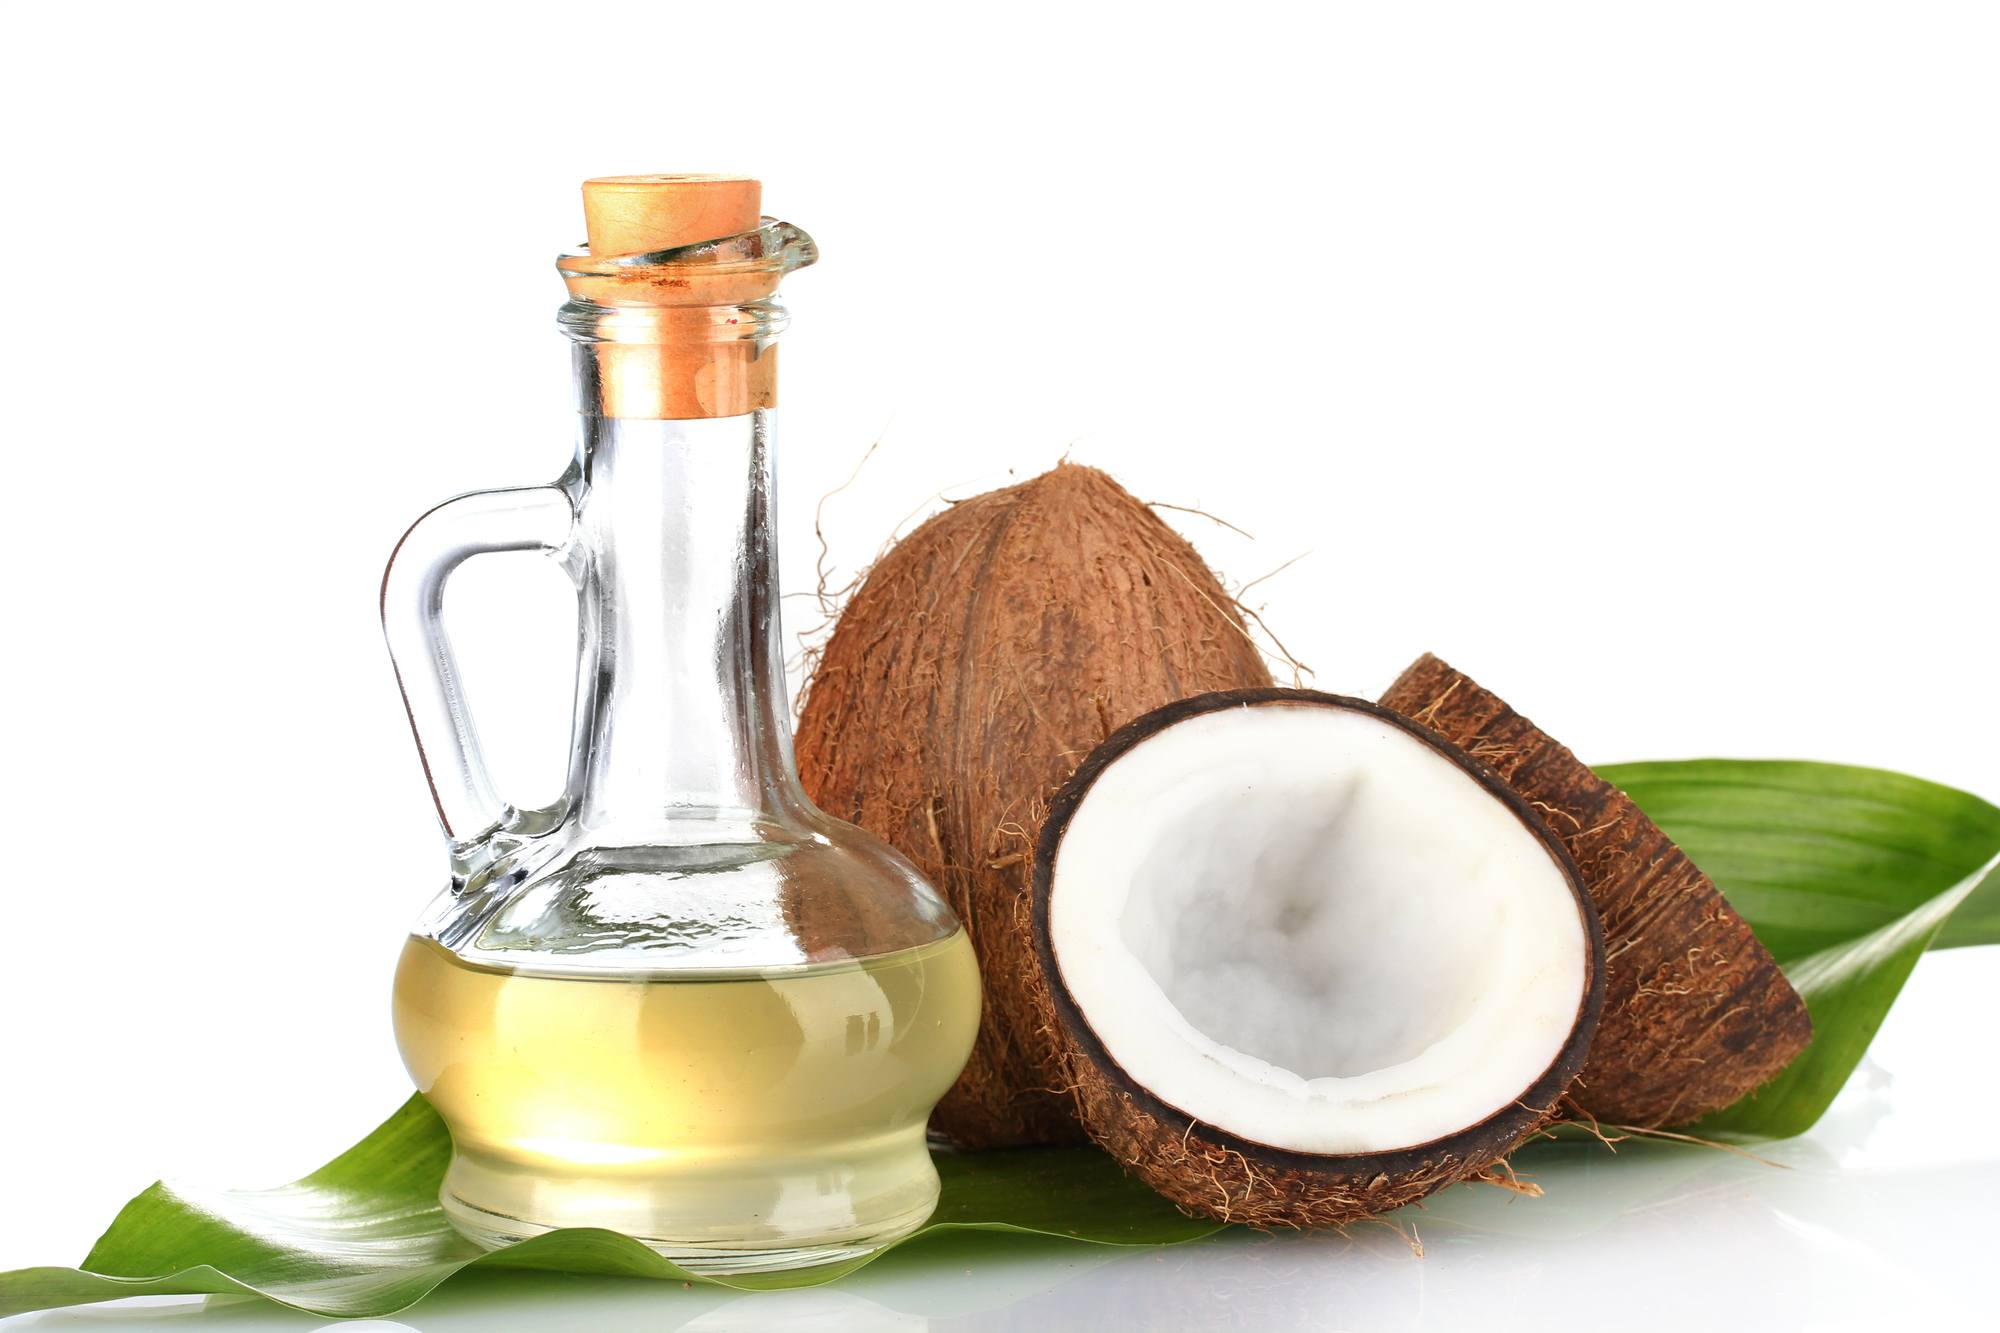 What is cocnut oil